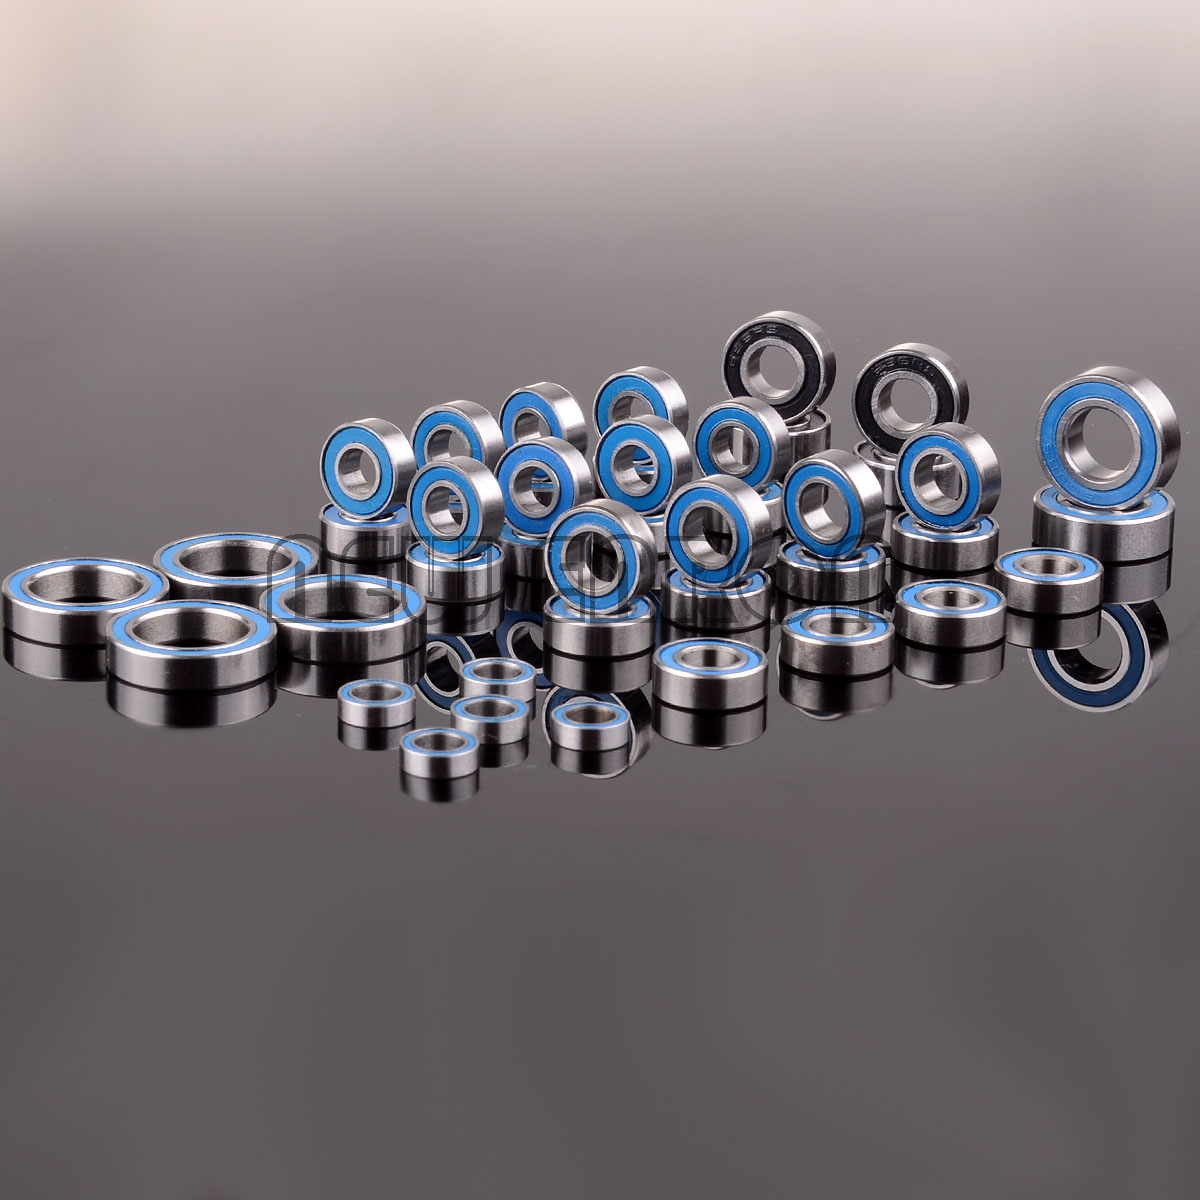 NEW ENRON Blue Ball Bearing Metric Rubber Sealed 43PCS RC Car FIT FOR Traxxas Summit KIT Bearing-12